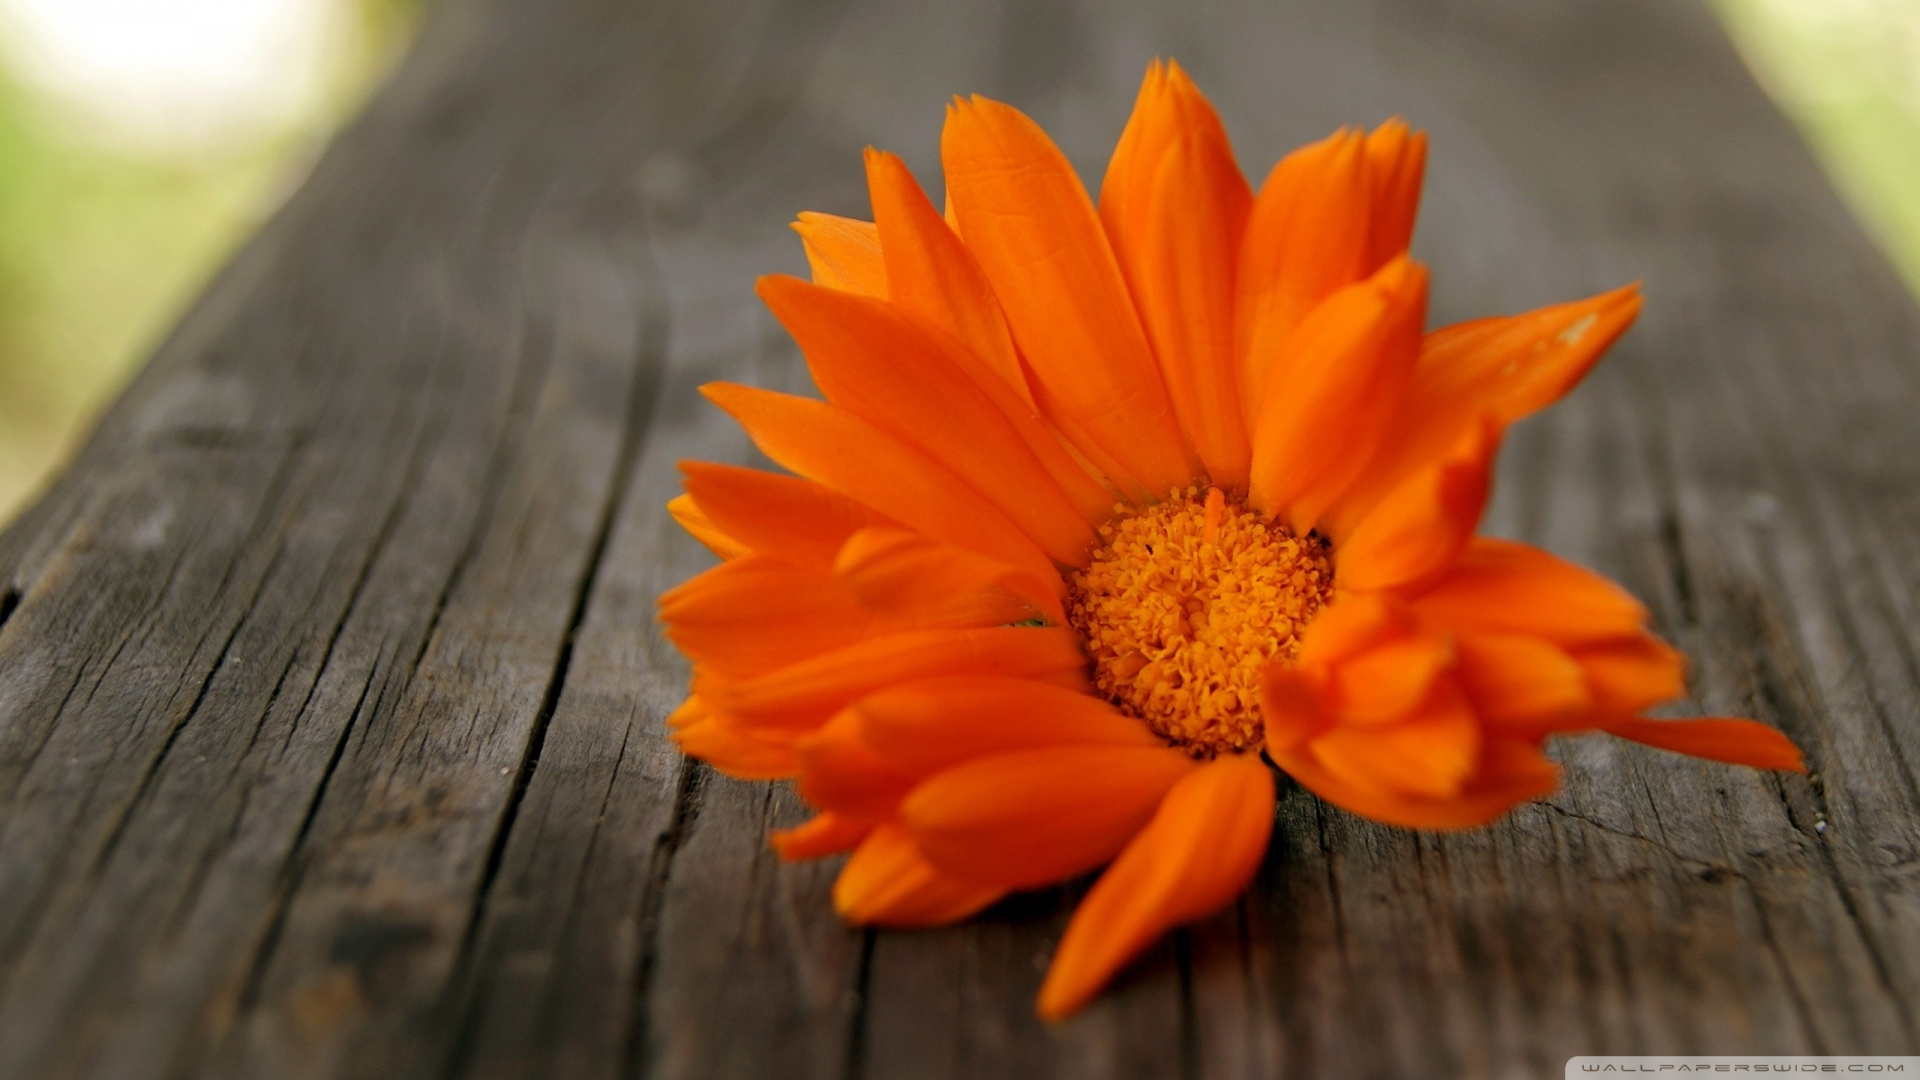 Orange Flowers HD